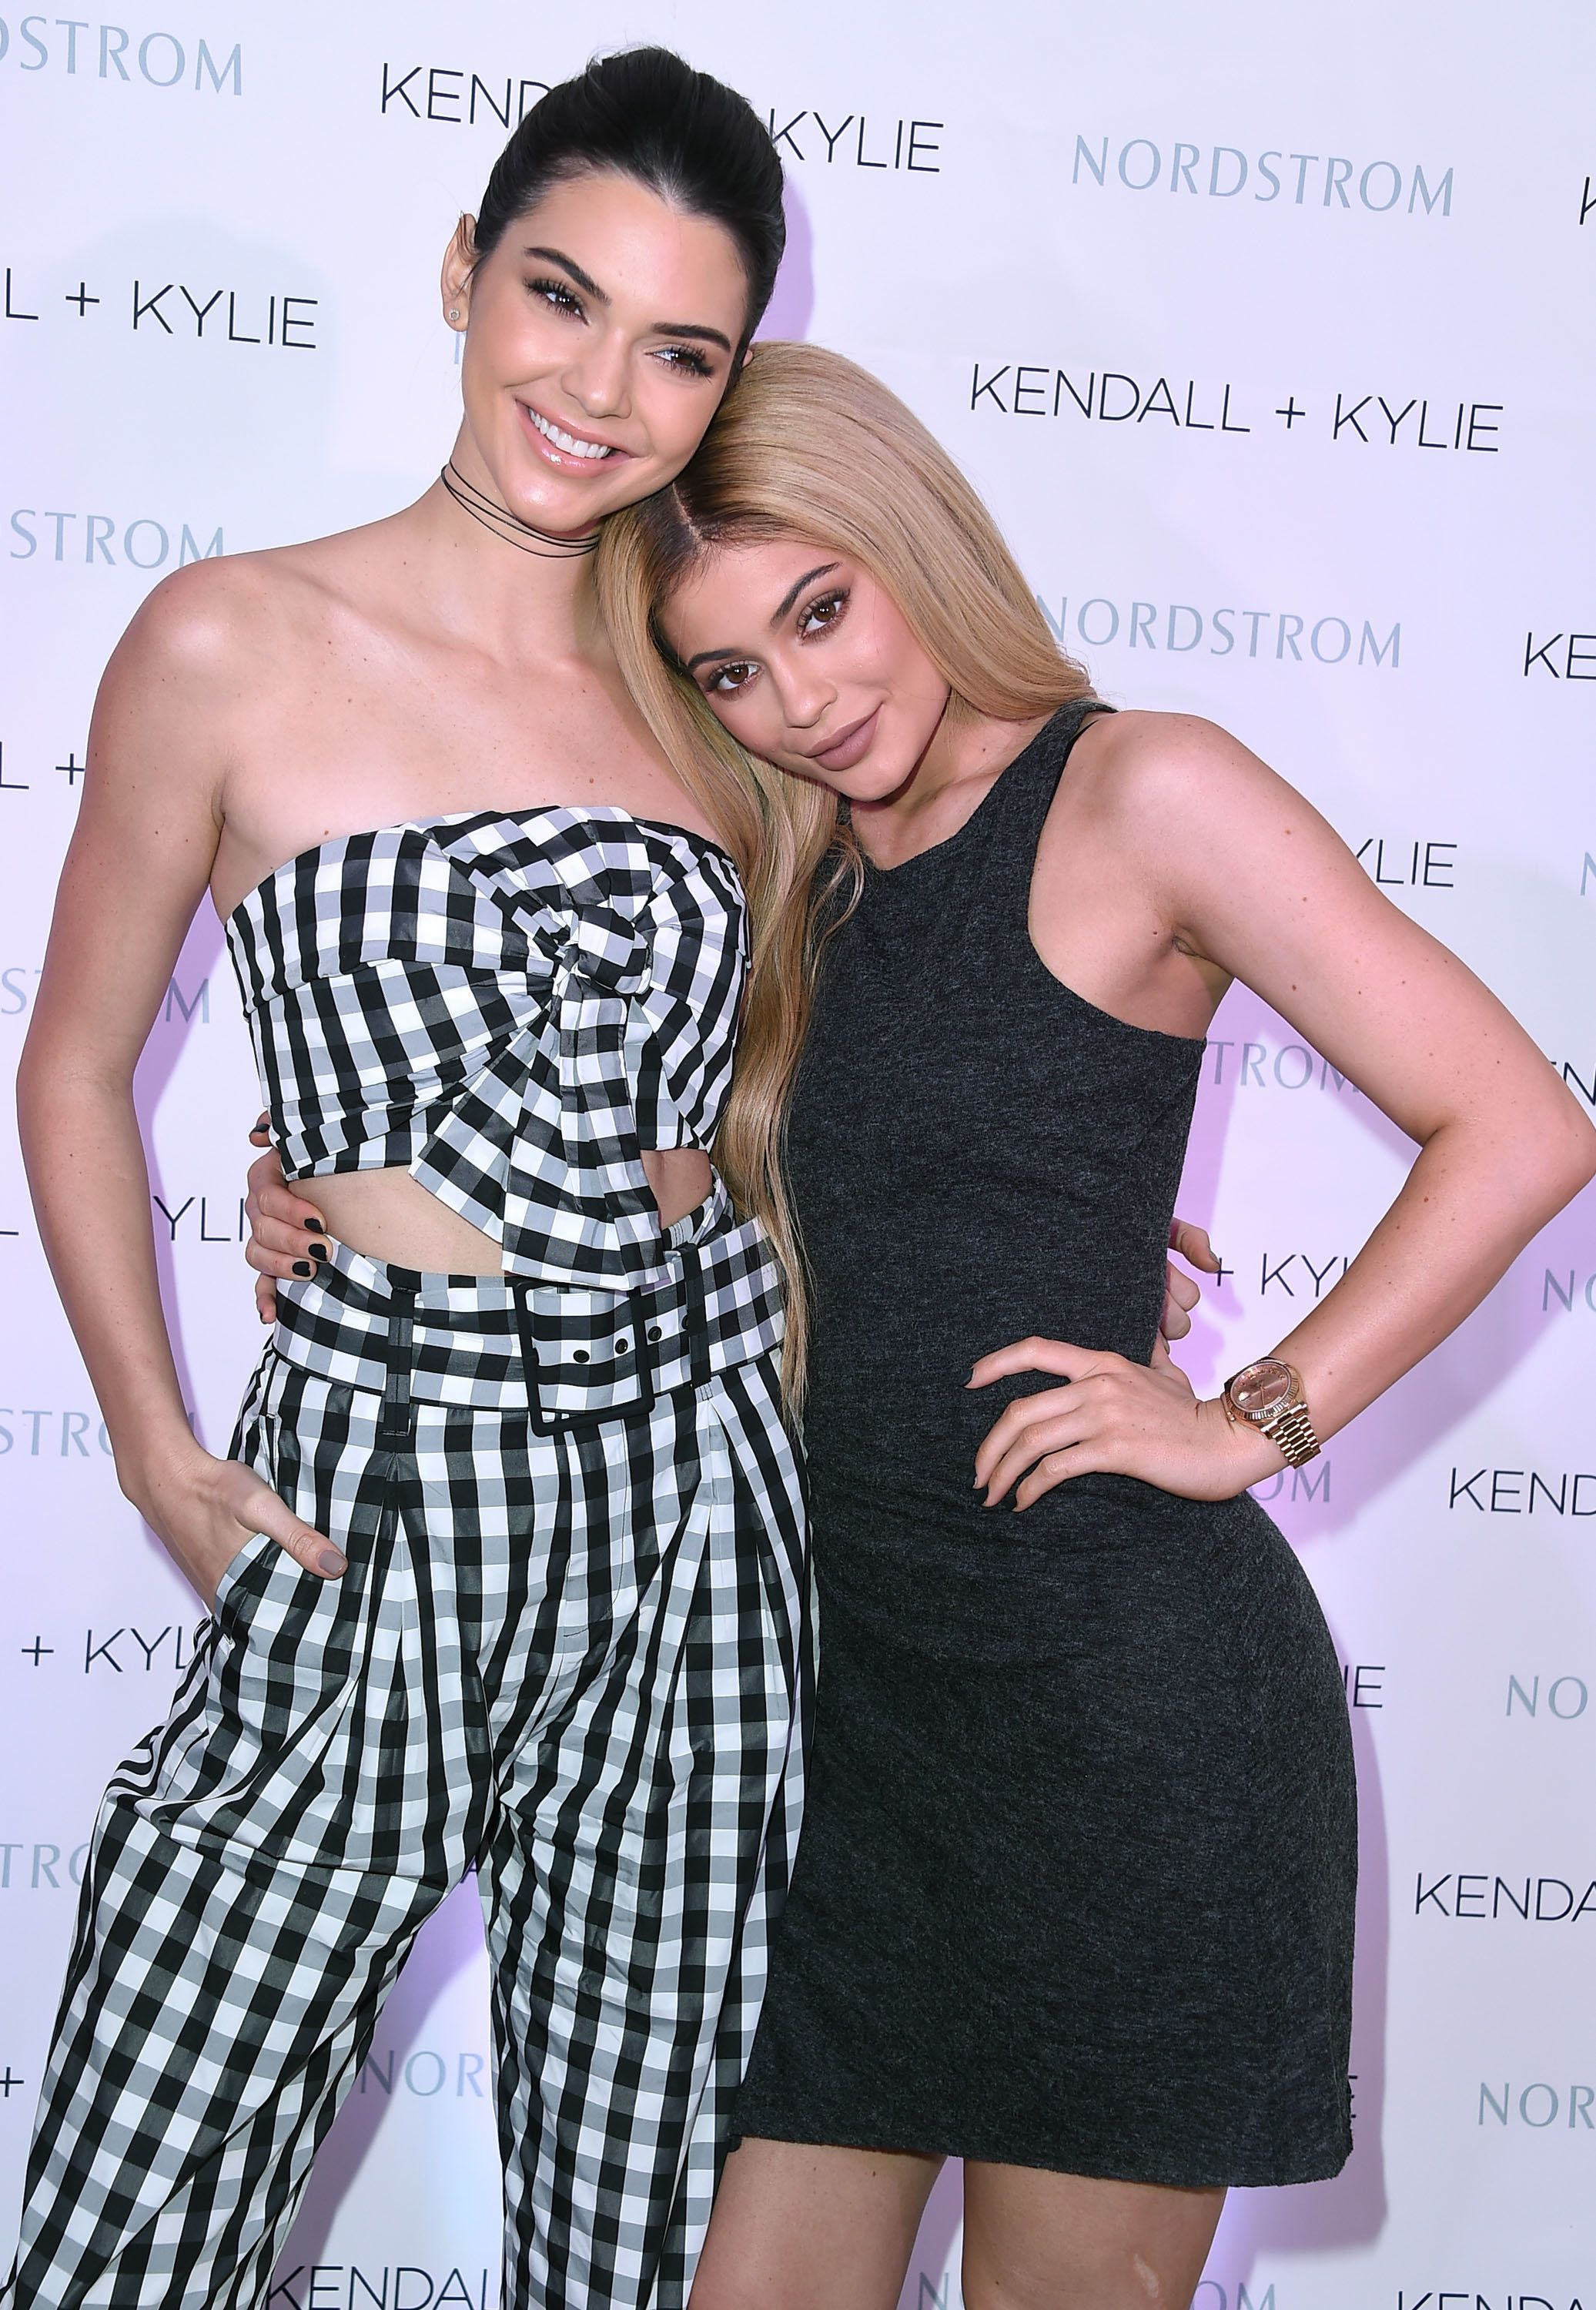 Kendall and Kylie Jenner celebrate Kendall + Kylie Collection at Chateau Marmont on March 24, 2016, in Los Angeles, Californi